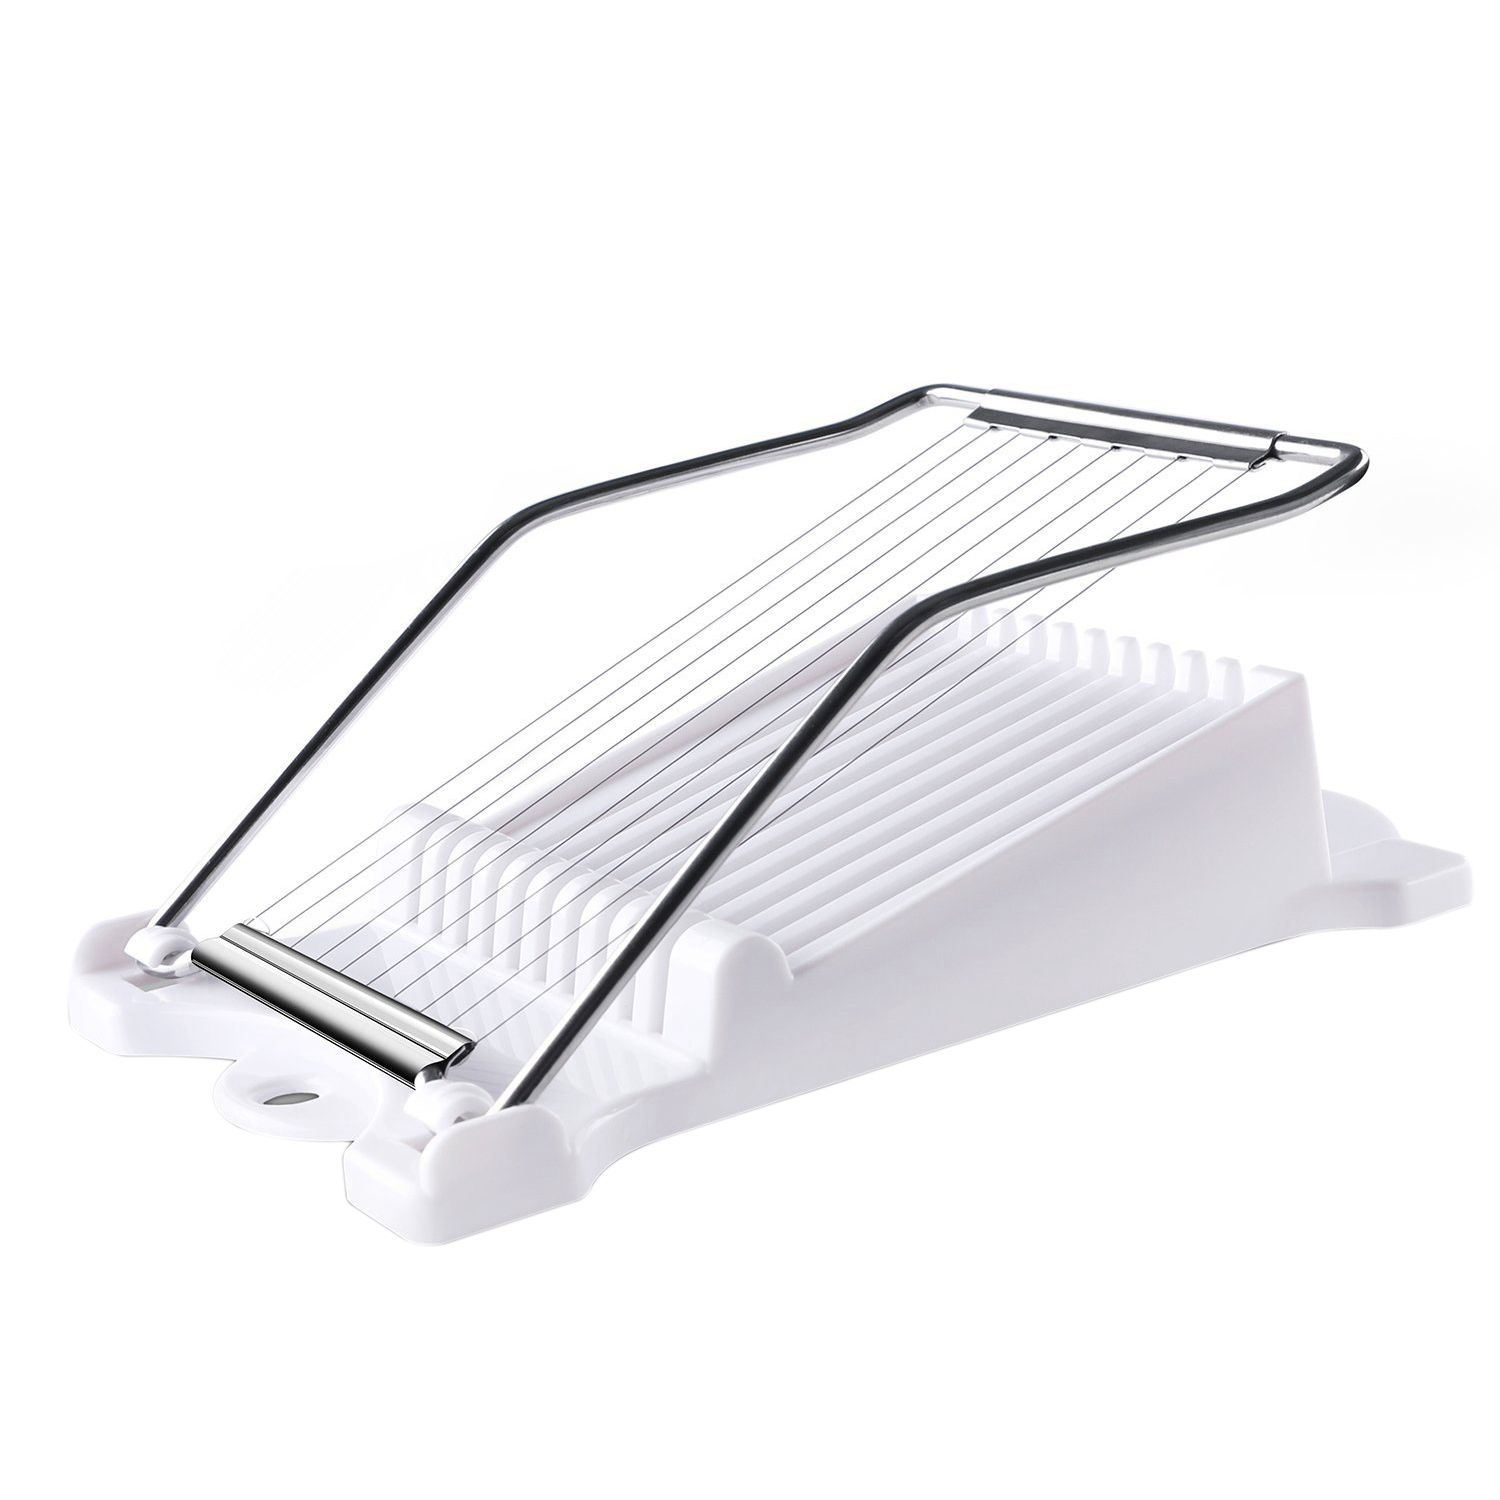 Multifunction Kitchen Slicer Egg Ham Sausage Banana Fruit And Vegetable Stainless Steel Cutting Machine Cooking processing Tools stainless steel watermelon slicer fruit vegetable cutting kitchen tool